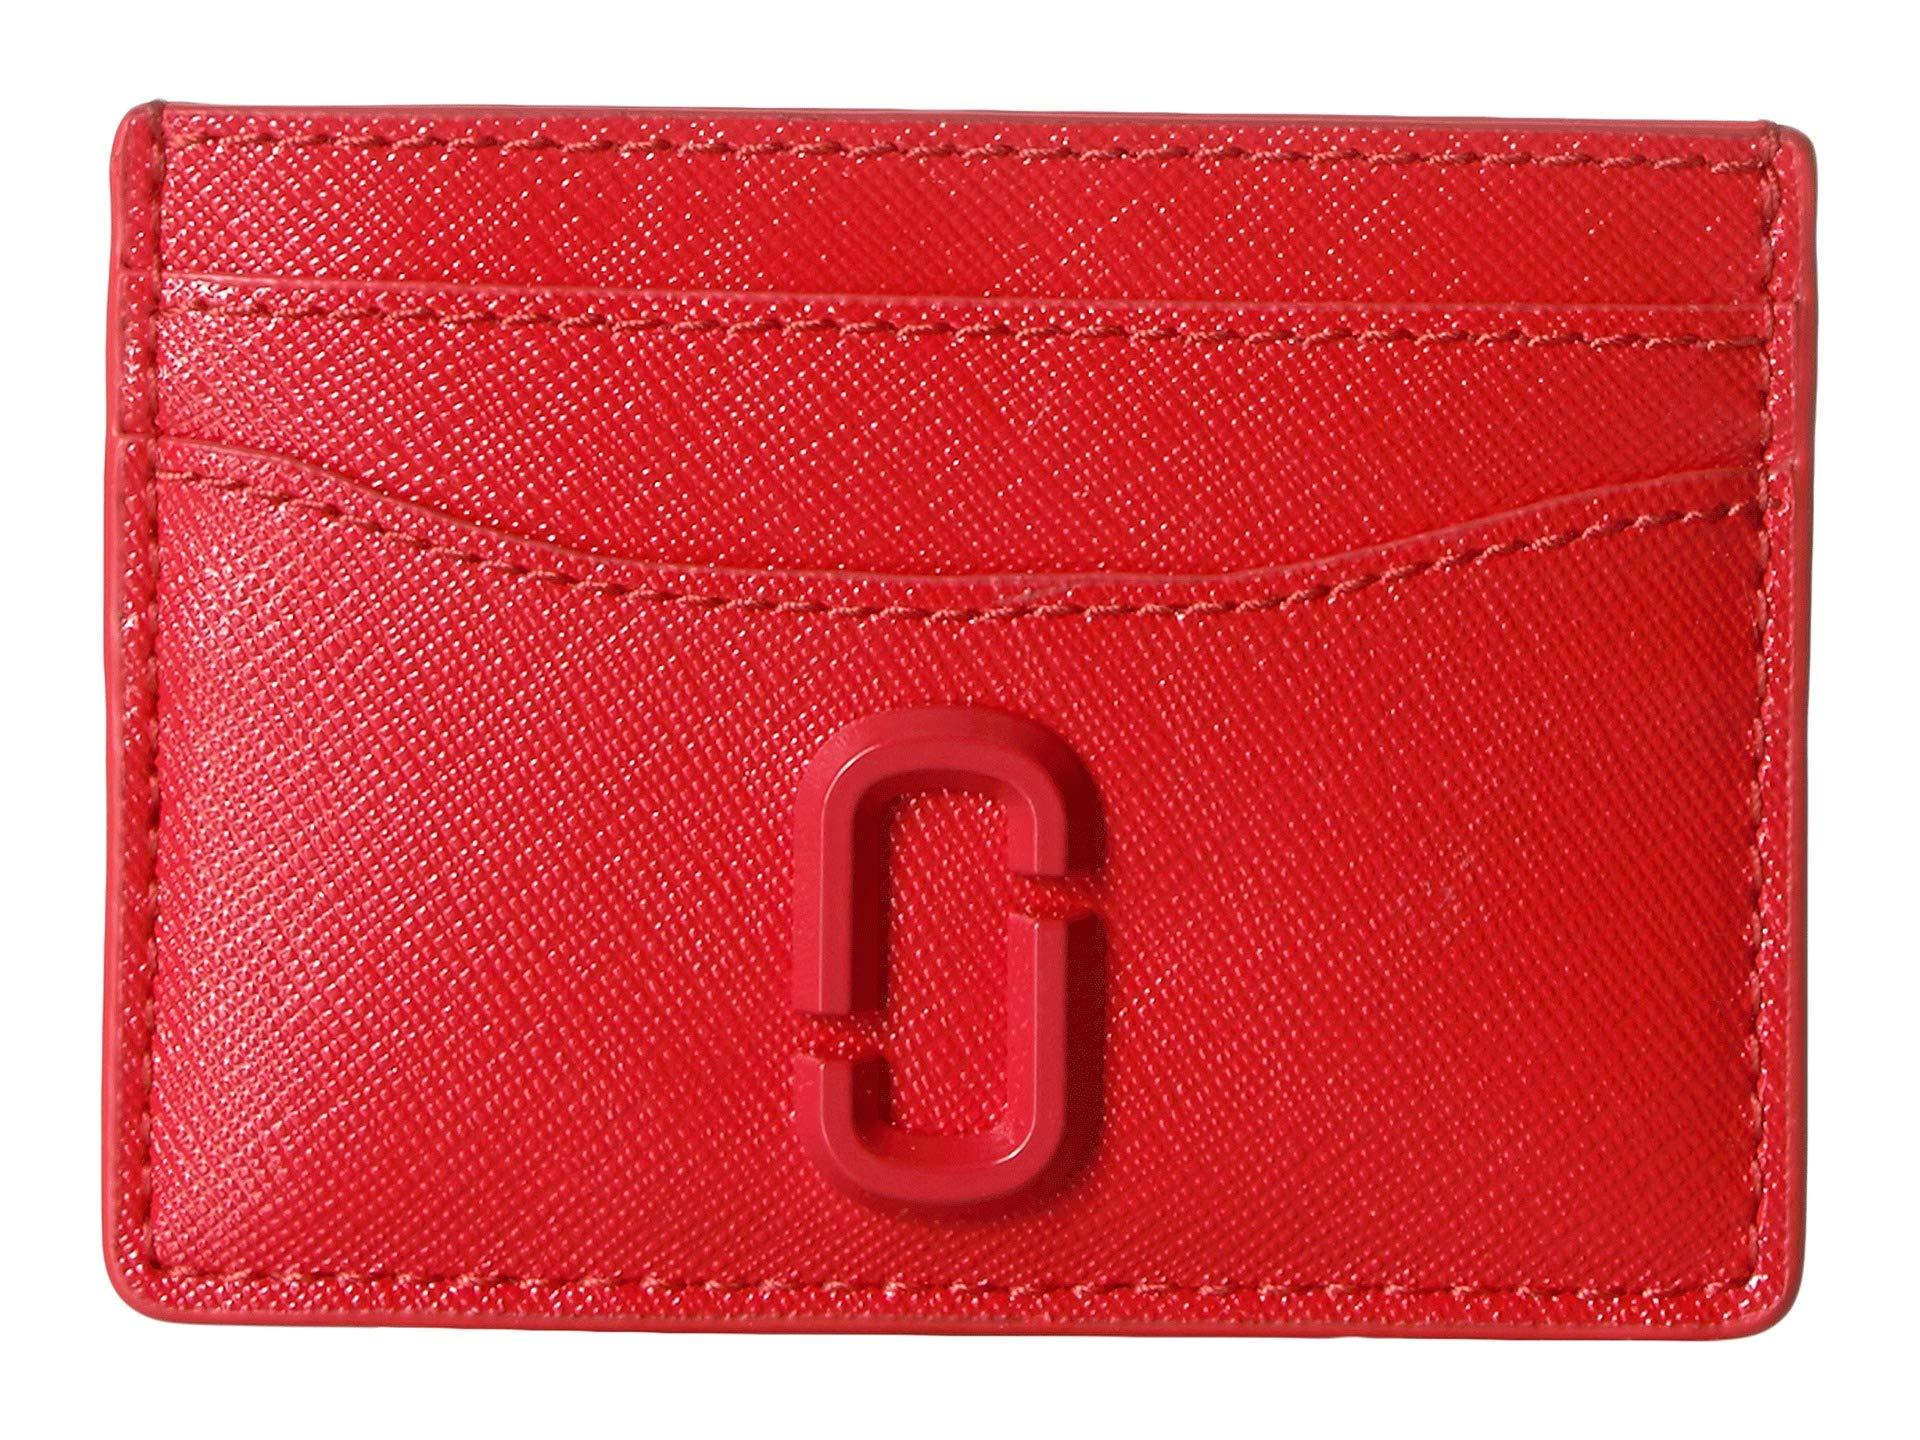 Marc Jacobs Women's Snapshot Card Case, Geranium, Red, Pink, One Size